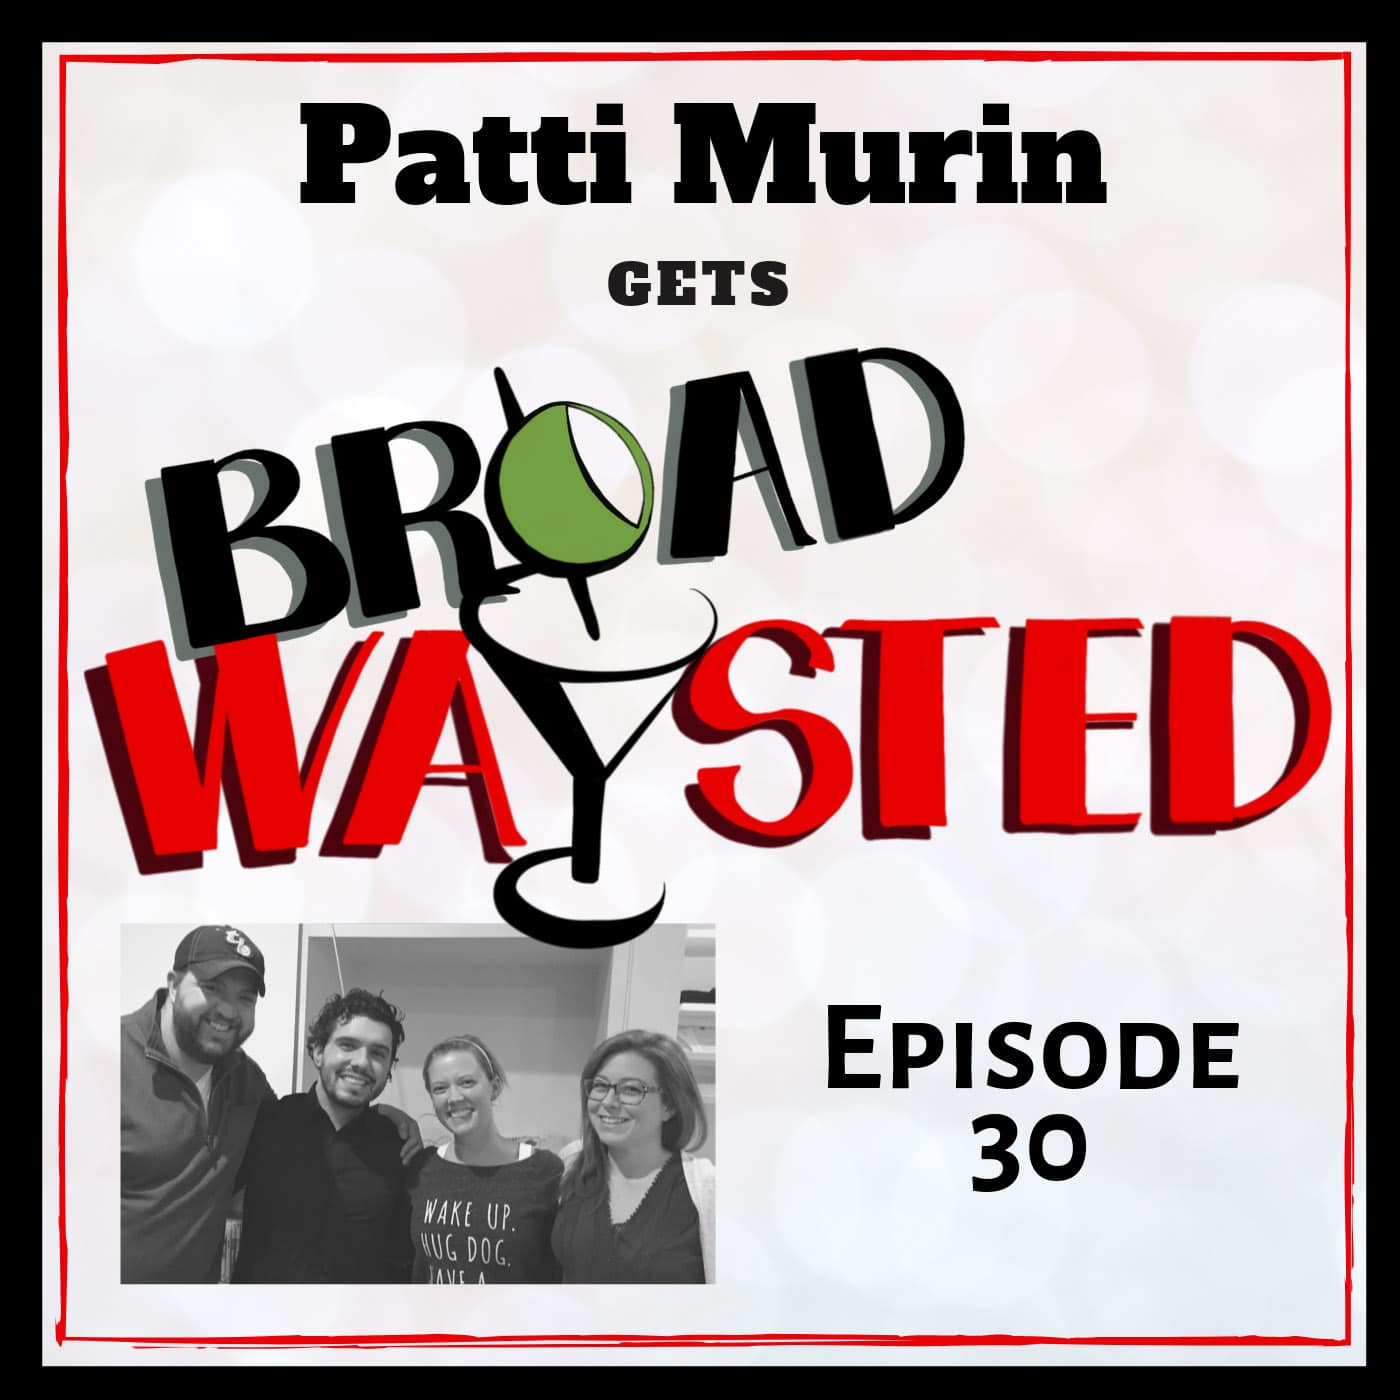 Broadwaysted Ep 30 Patti Murin